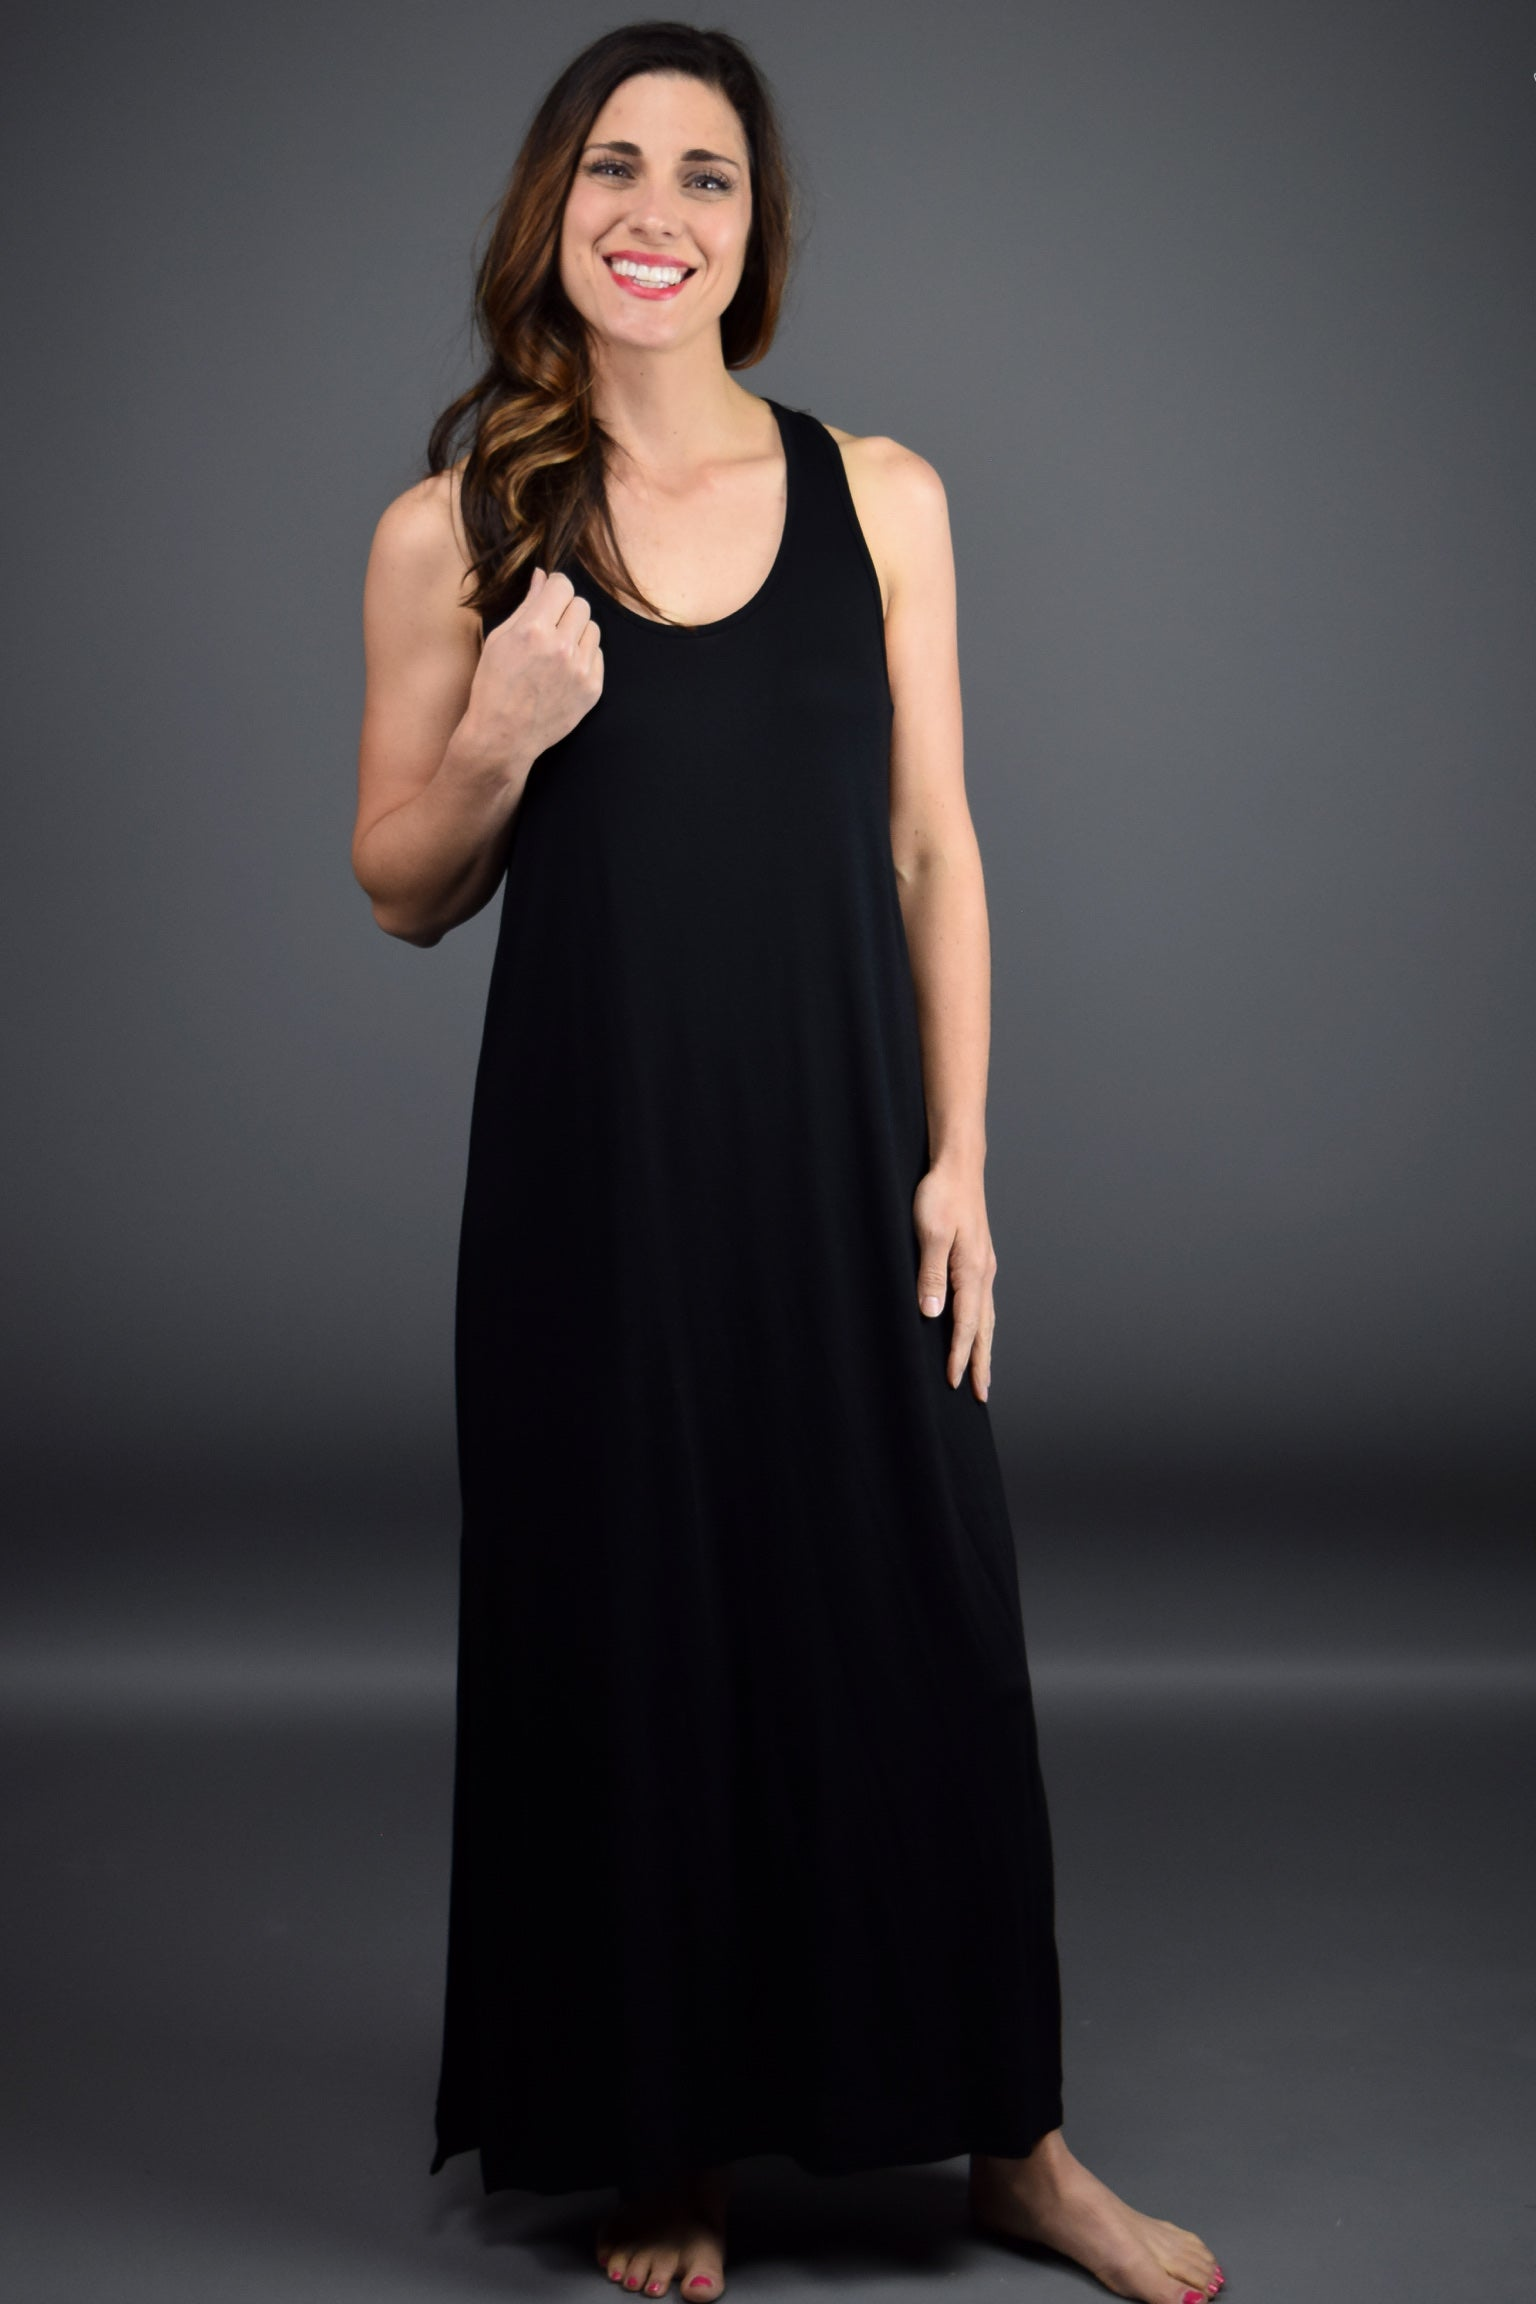 Market Stroll Racerback Maxi Dress - Black